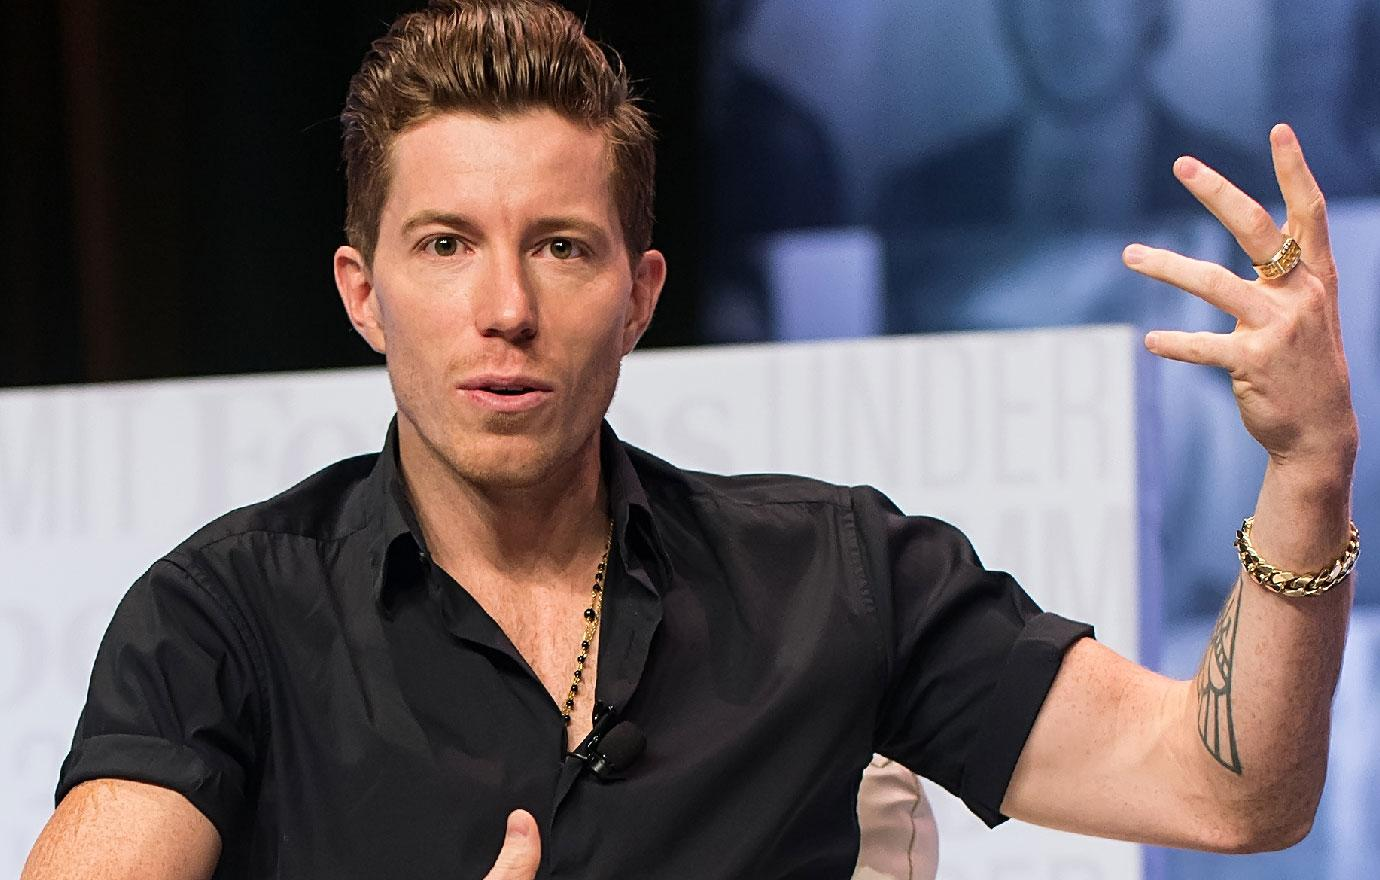 Shaun White Blasts Insurance Company Over Sexual Harassment Case